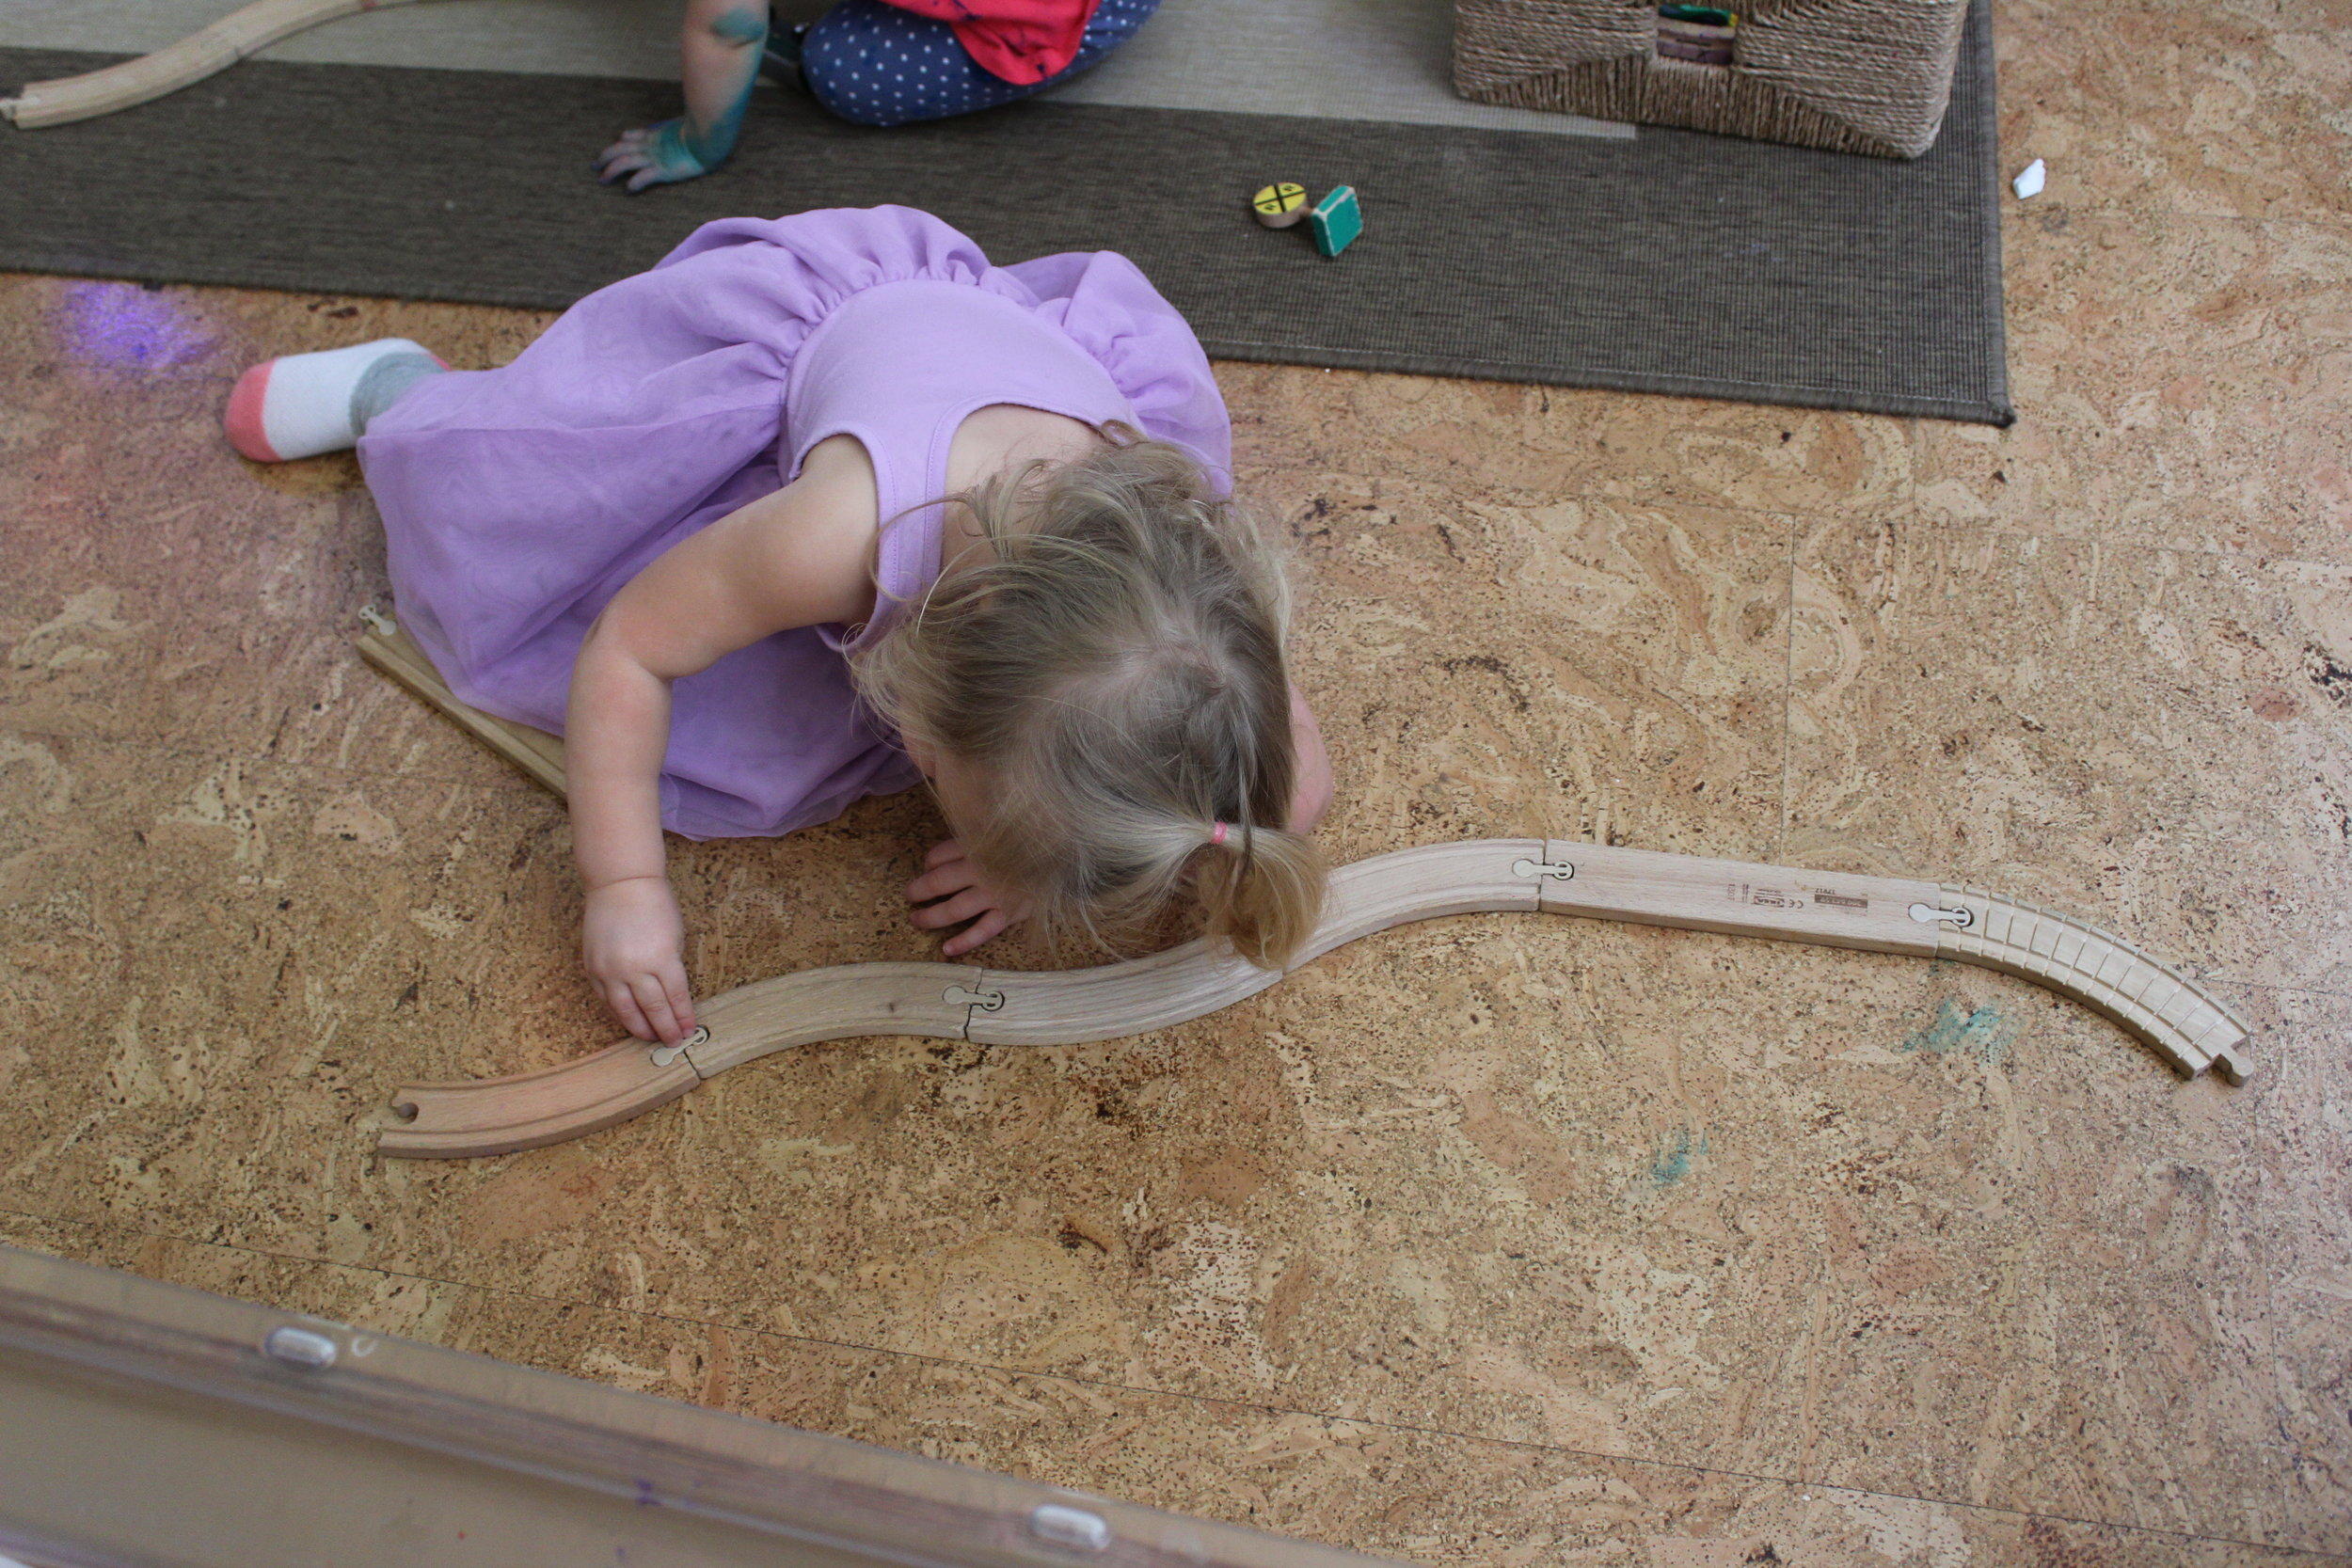 Train tracks are not only fun but developmentally appropriate for young toddlers. They are tools that help facilitate optimum child growth and development. Each piece stimulates Madeline imagination and creativity. It also enhances problem-solving skills. Madeline created her own track configuration. She carefully chose and connected each track. She observed and focused on each track, making sure it fits.